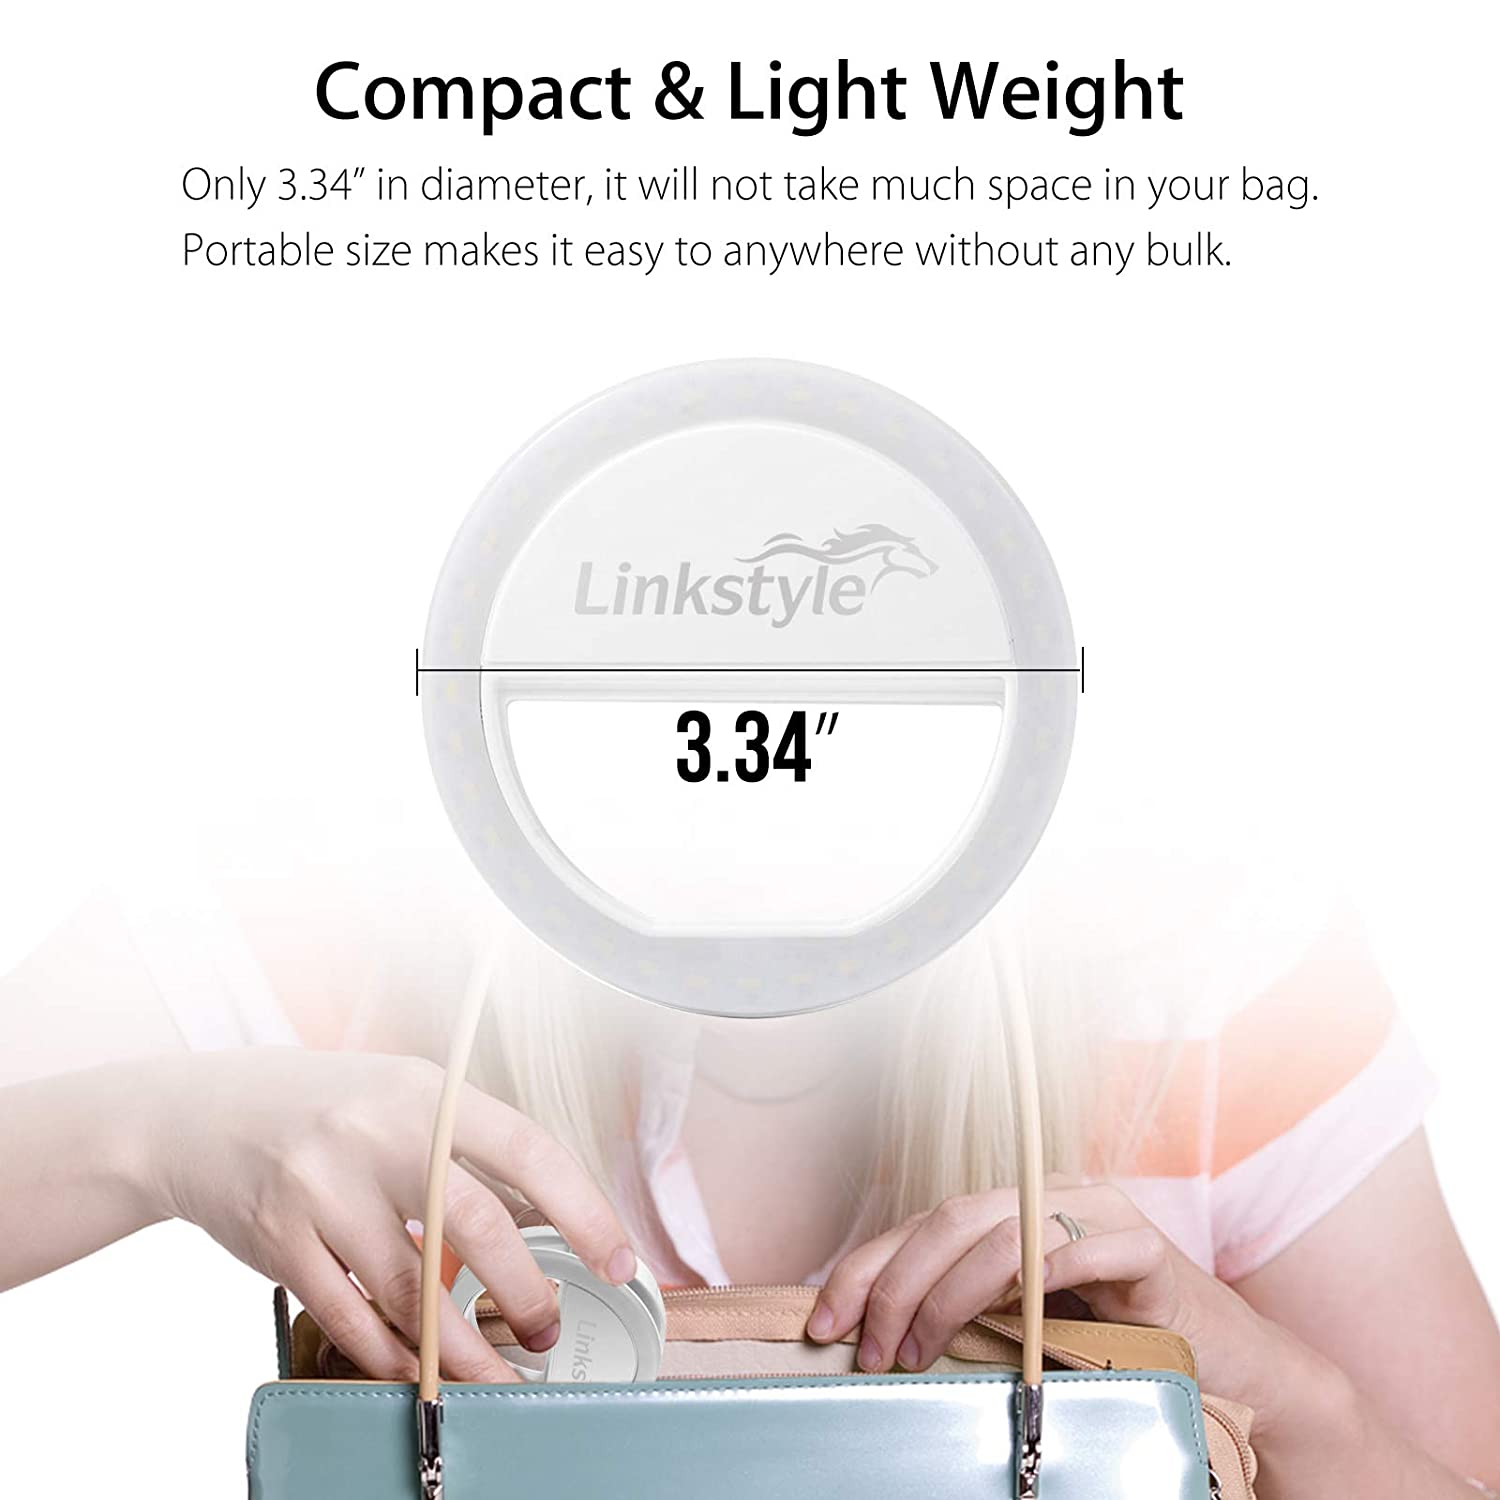 Linkstyle 2 Pack Clip on Selfie Ring Light Rechargeable 36 LEDs 3 Level Brightness Light for Cell Phone